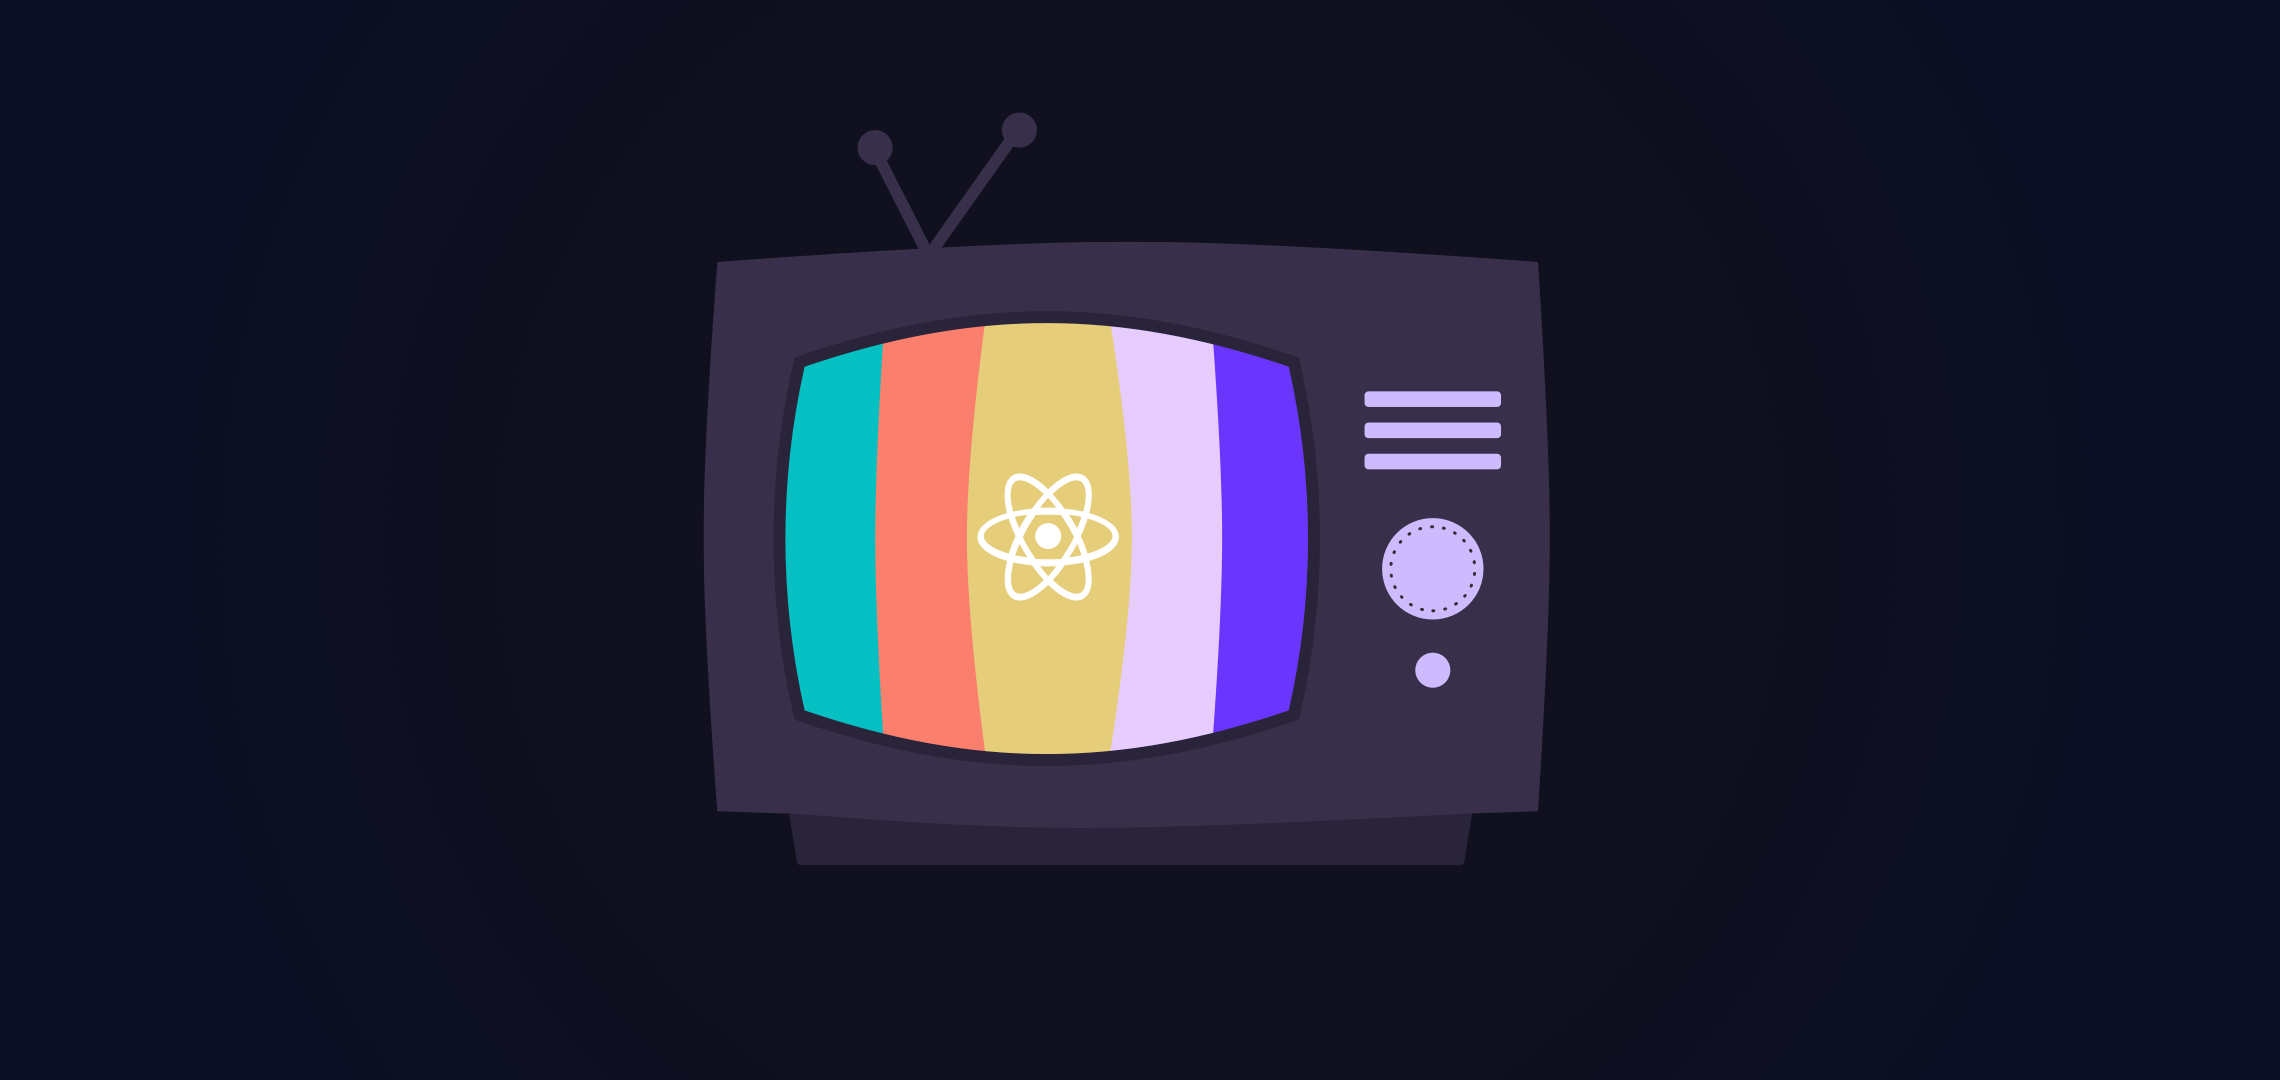 illustration of an old TV with bad signal, transmitting image of react.js logo with mustache